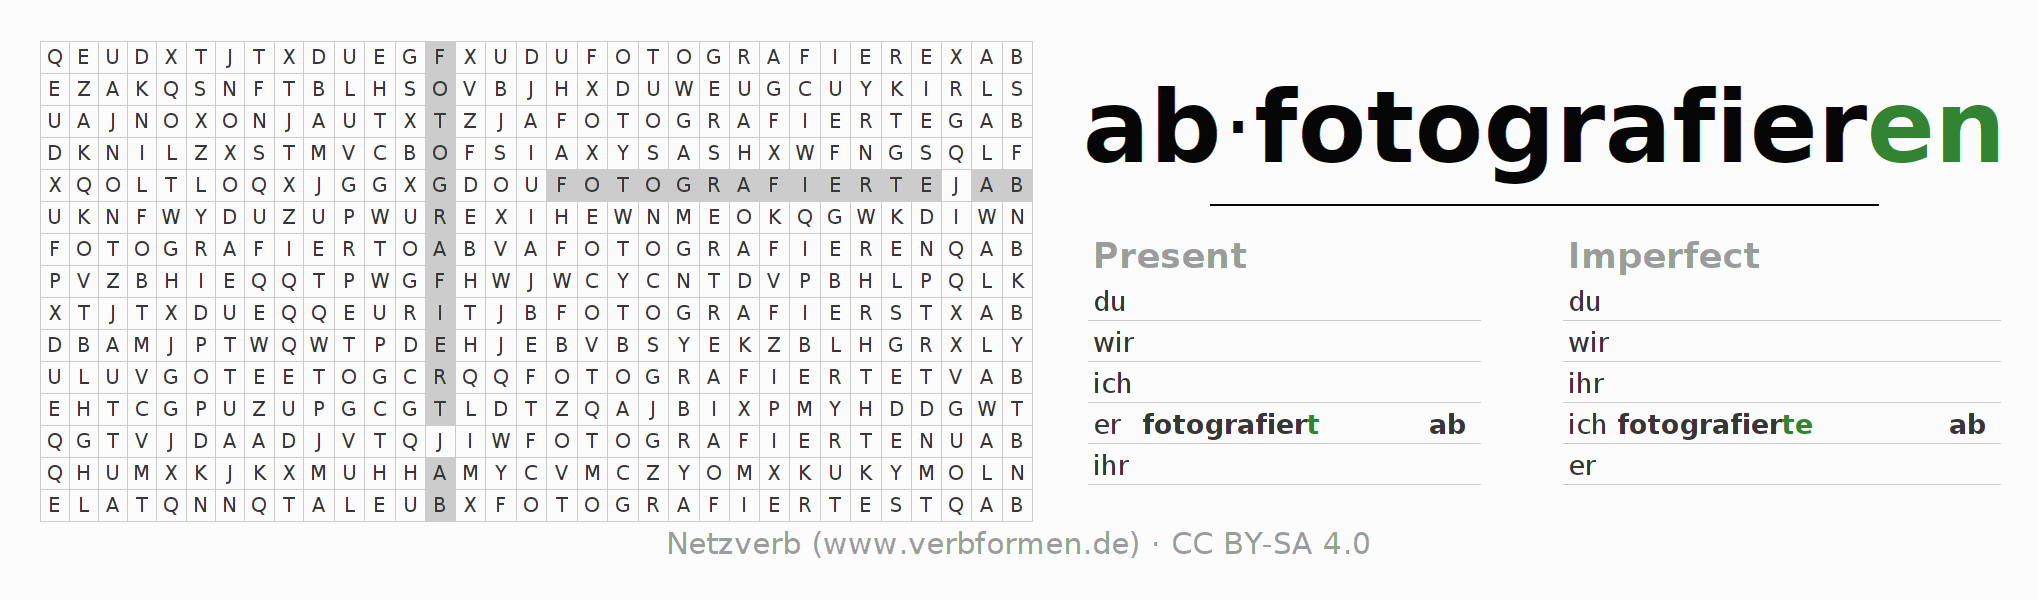 Word search puzzle for the conjugation of the verb abfotografieren